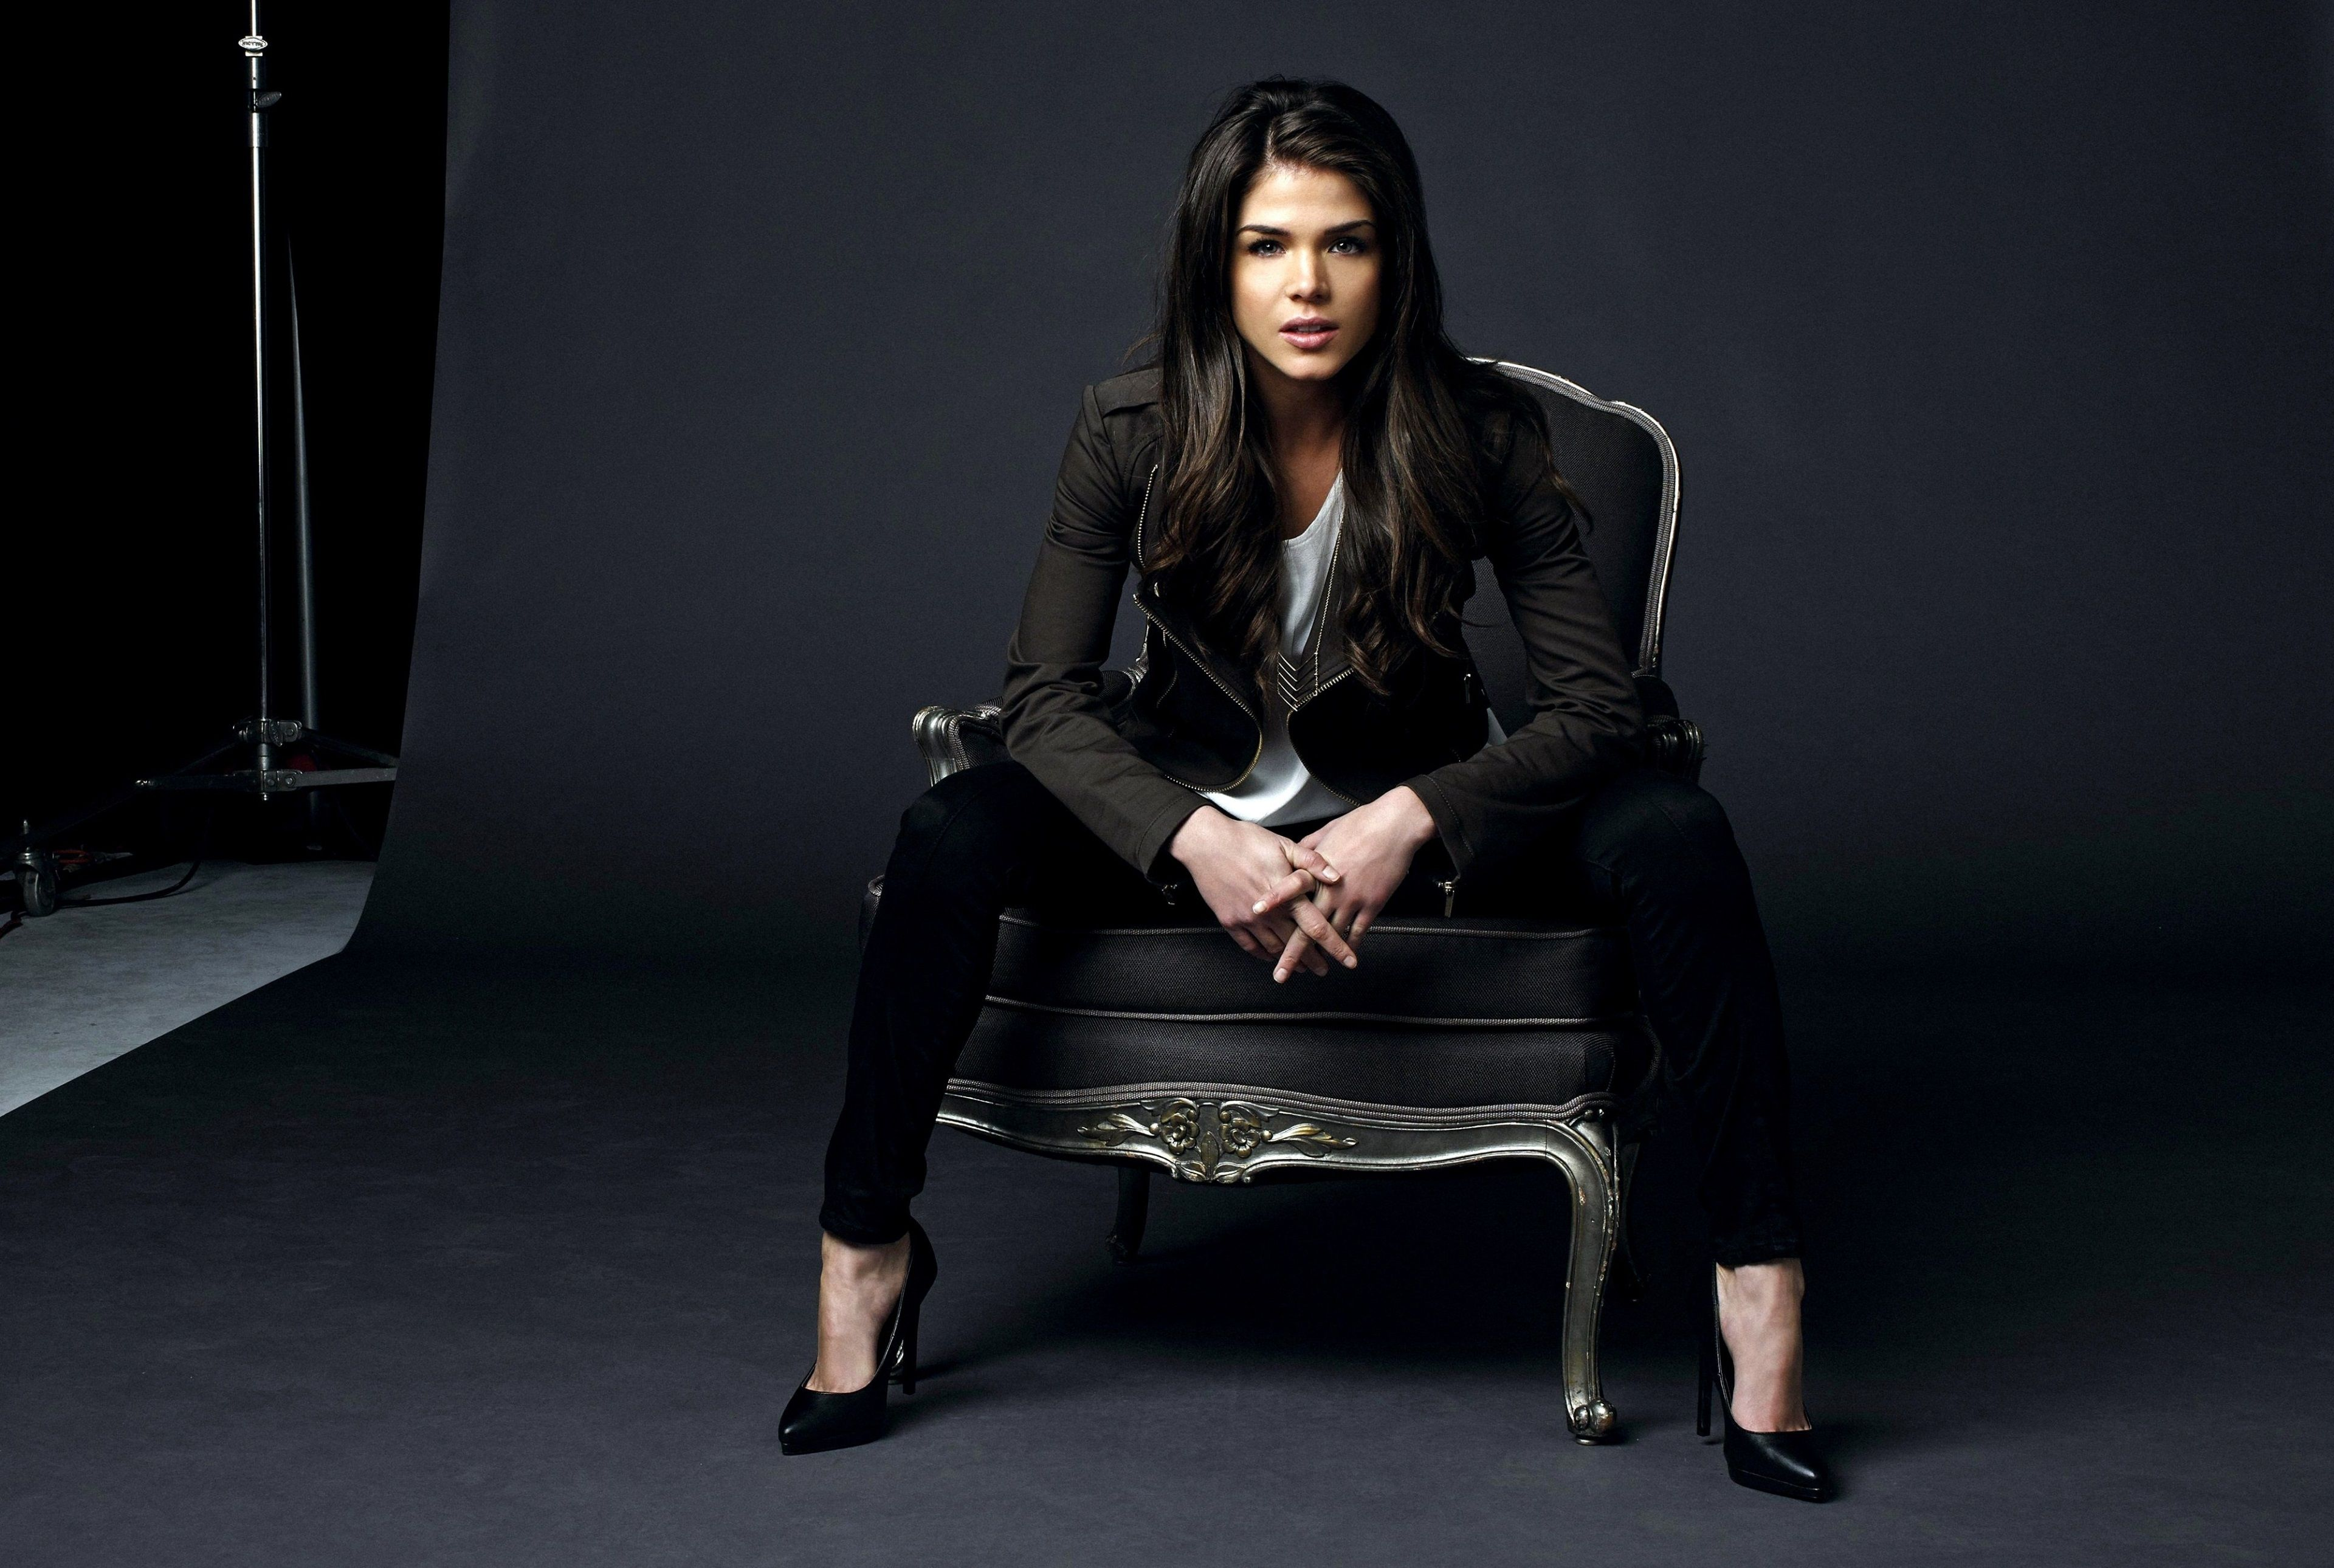 3840x2580 marie avgeropoulos 4k pc wallpaper download hd 3840x2580